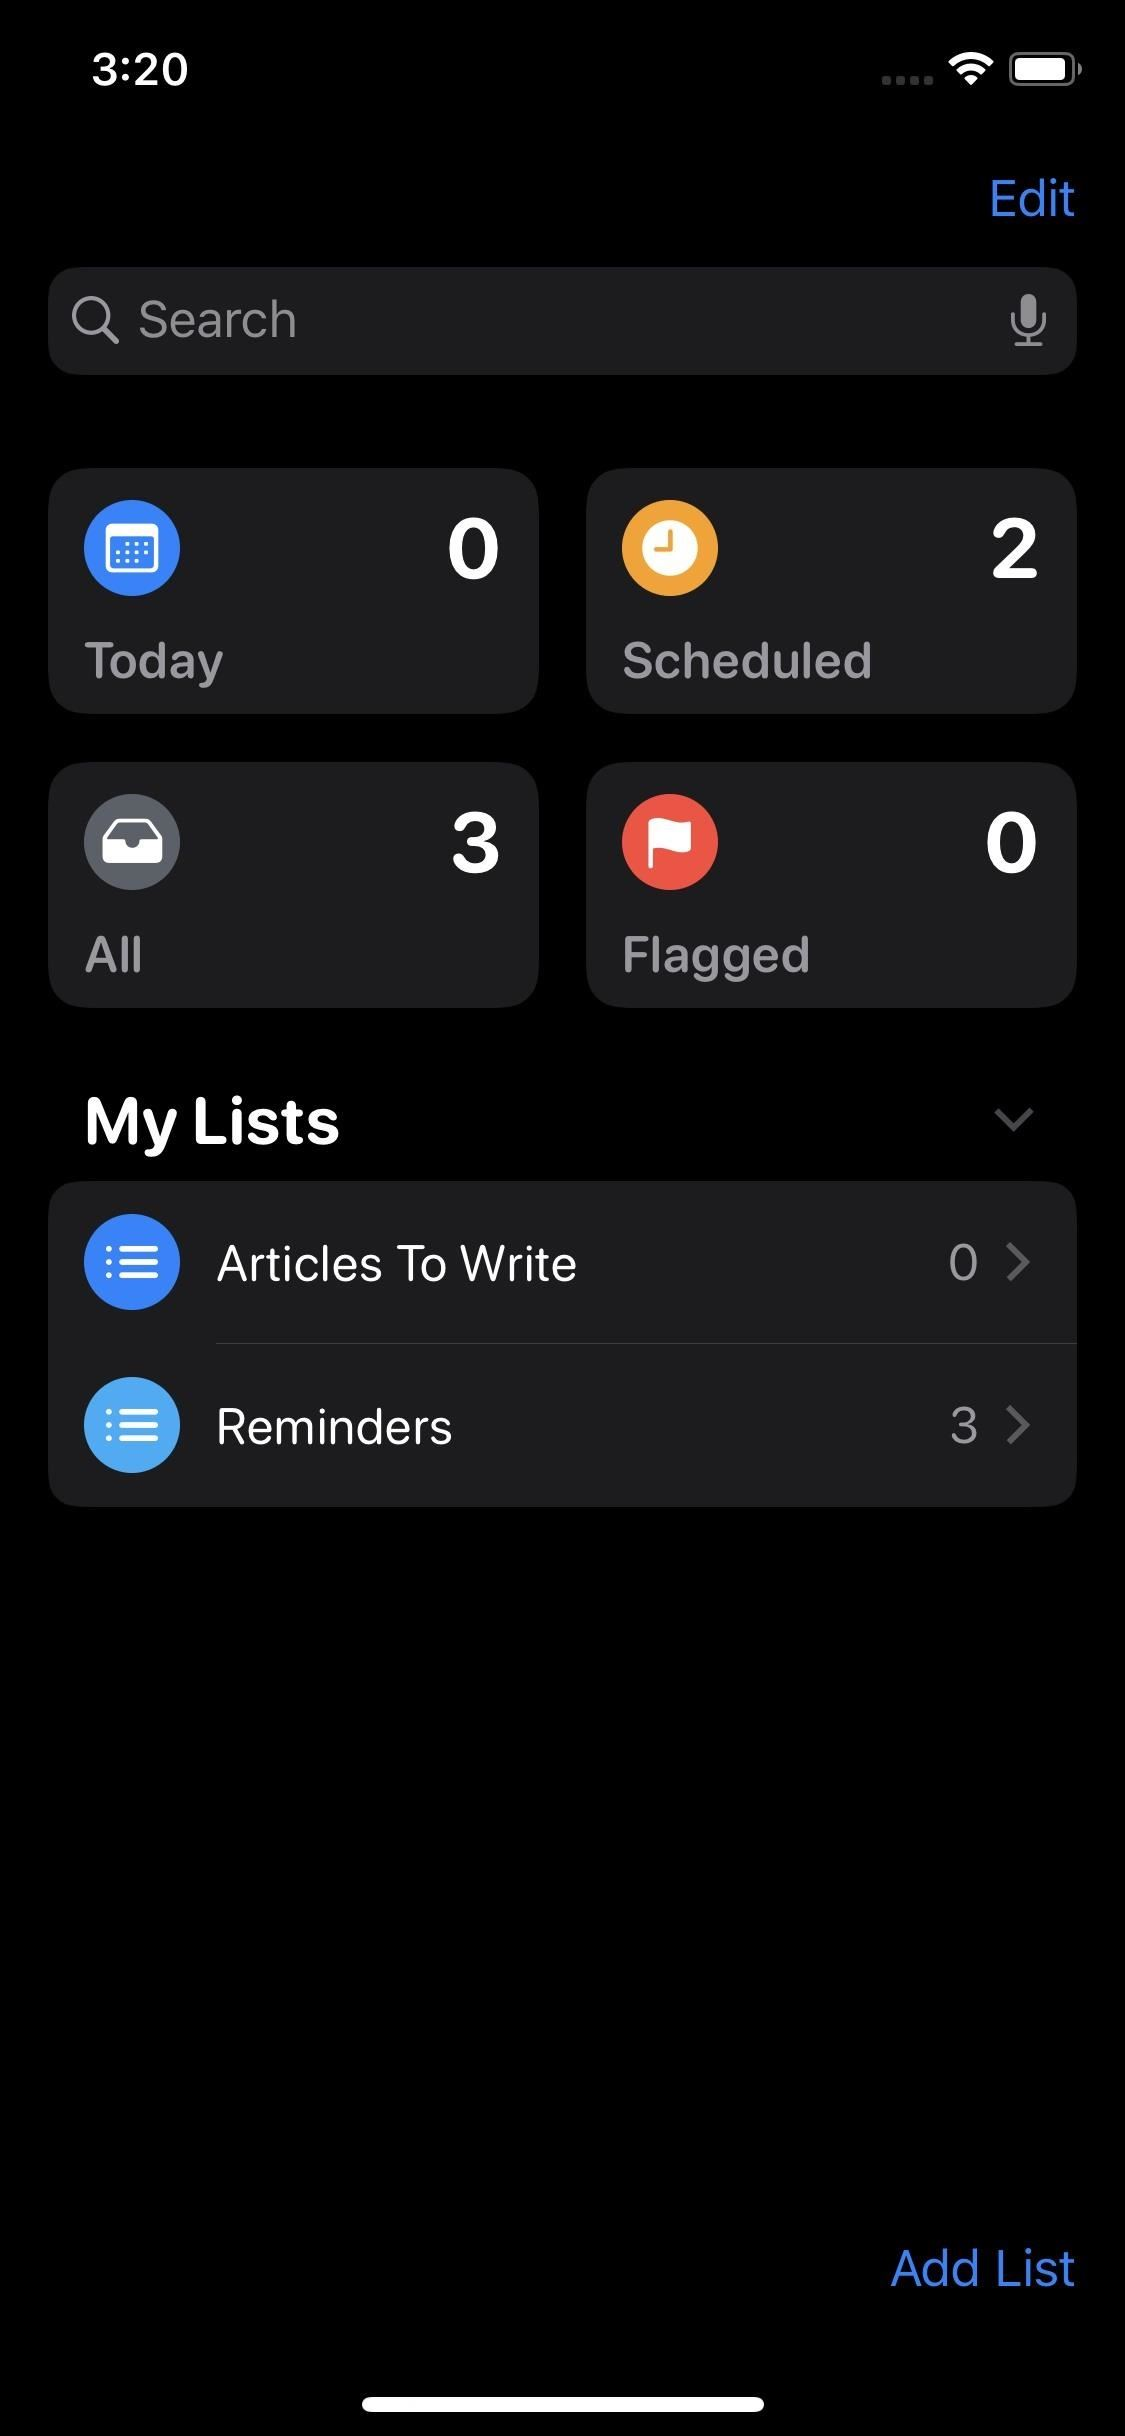 How to Change List Colors & Icons in iOS 13's Reminders App for a More Customized Look